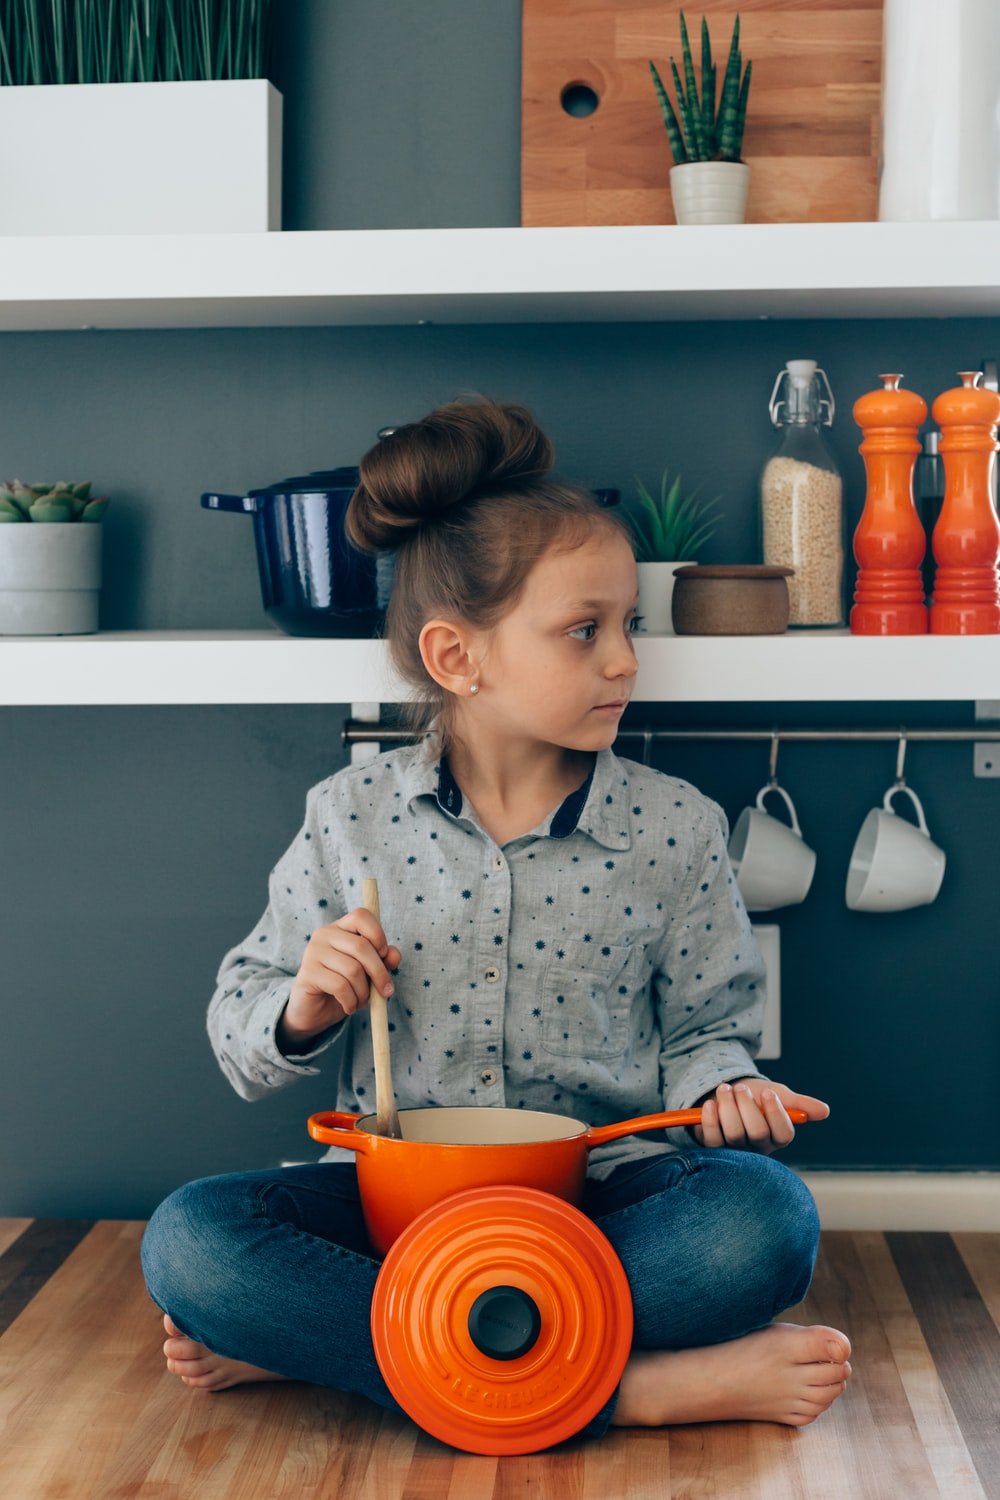 woman wearing grey blouse holding orange sauce pan and brown ladle